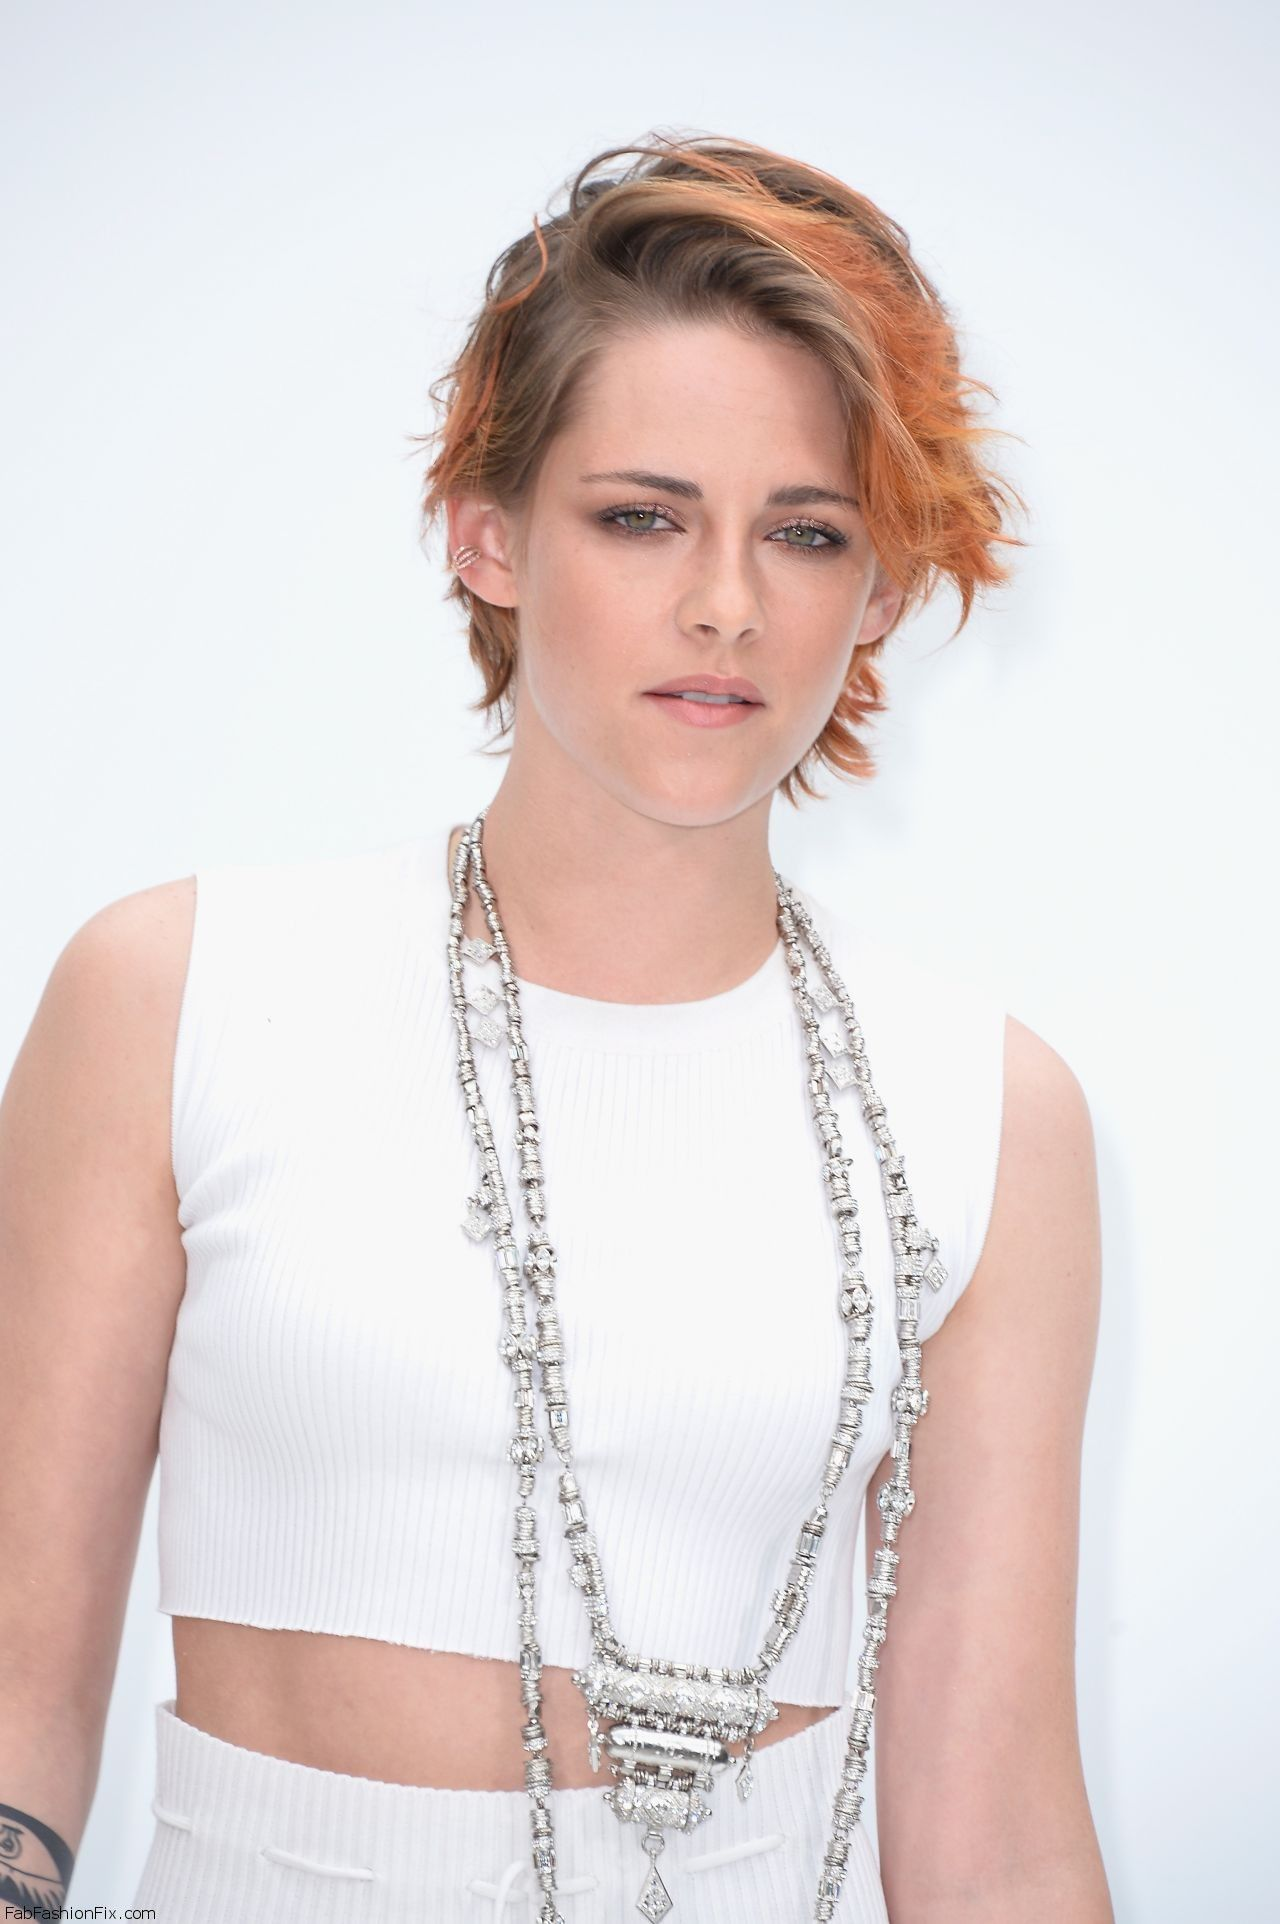 kristen-stewart-chanel-fashion-show-during-paris-fashion-week-july-2014_1